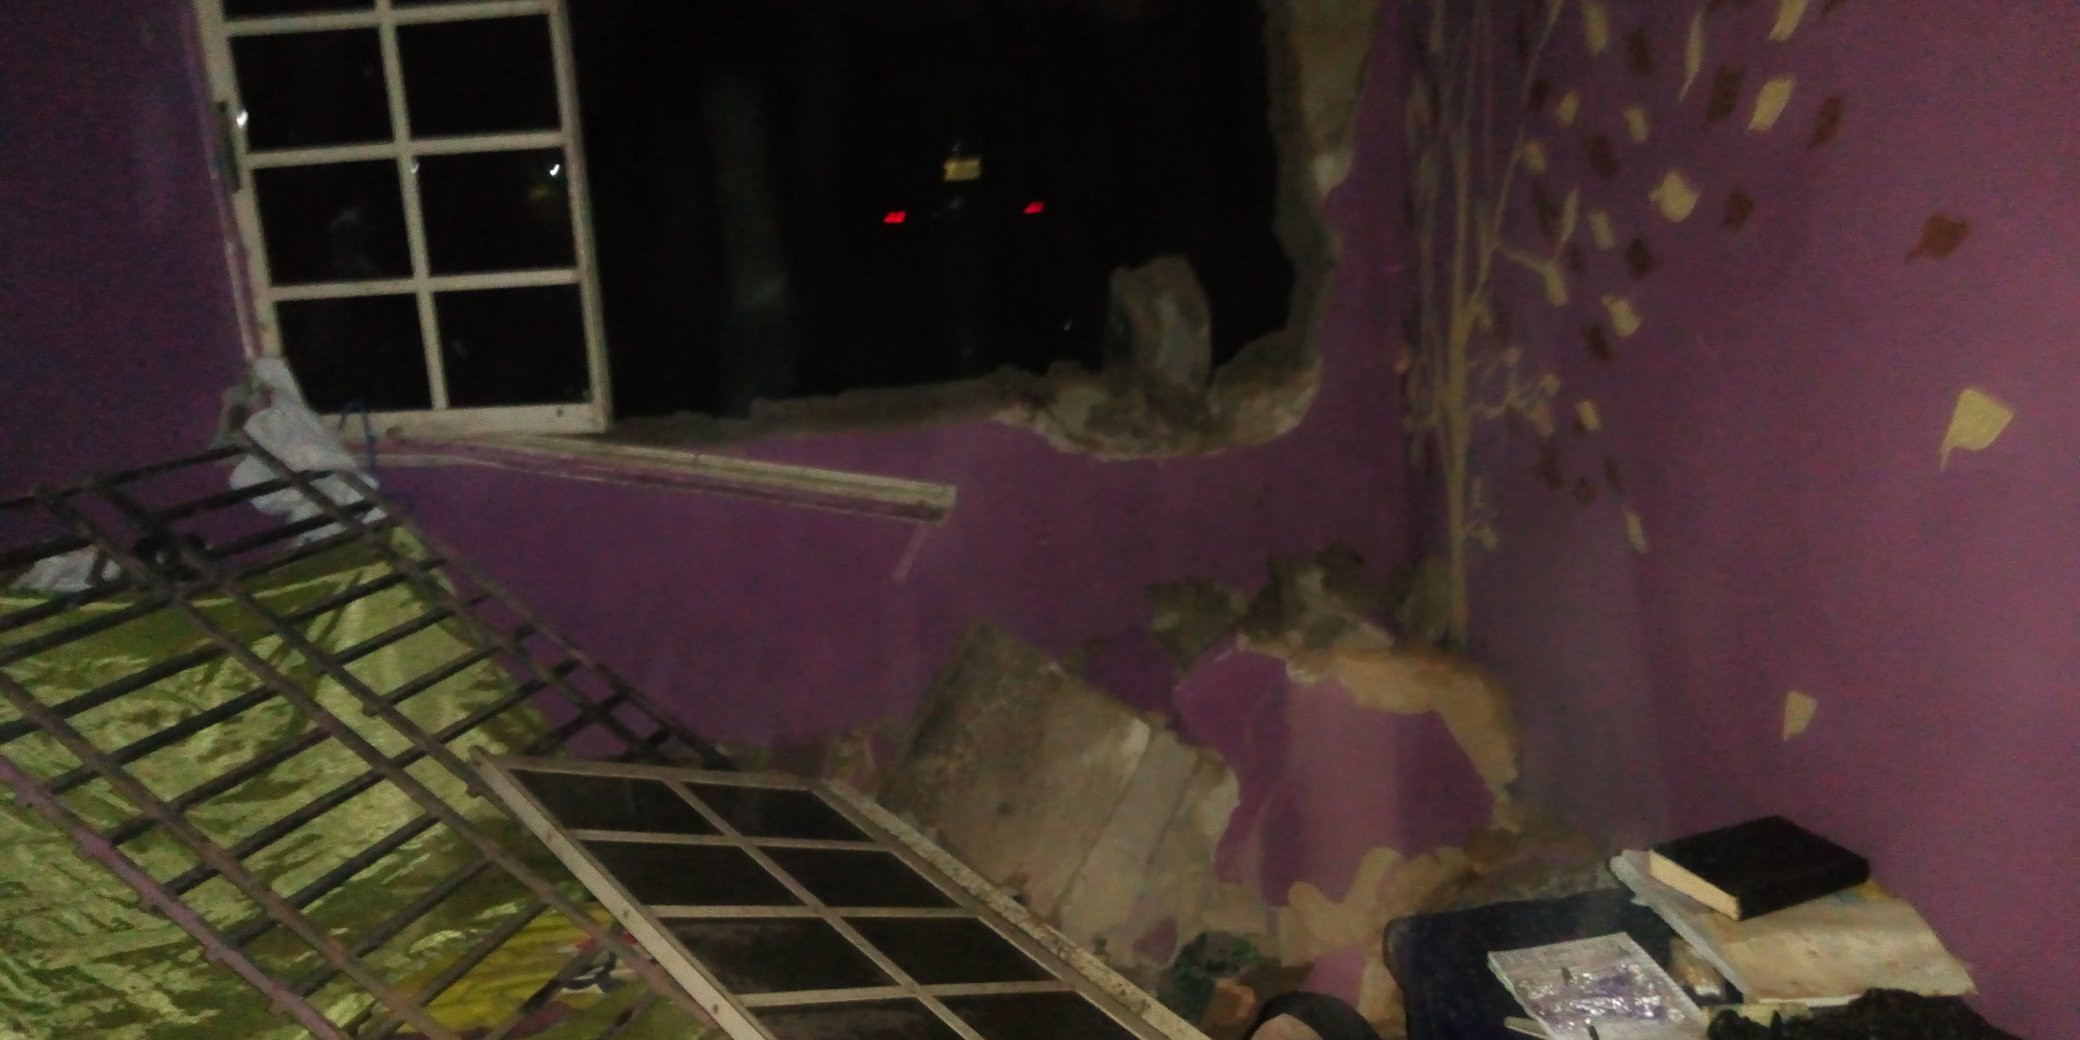 Woman escapes unharmed after heavy wind blew off her windows and wall at night